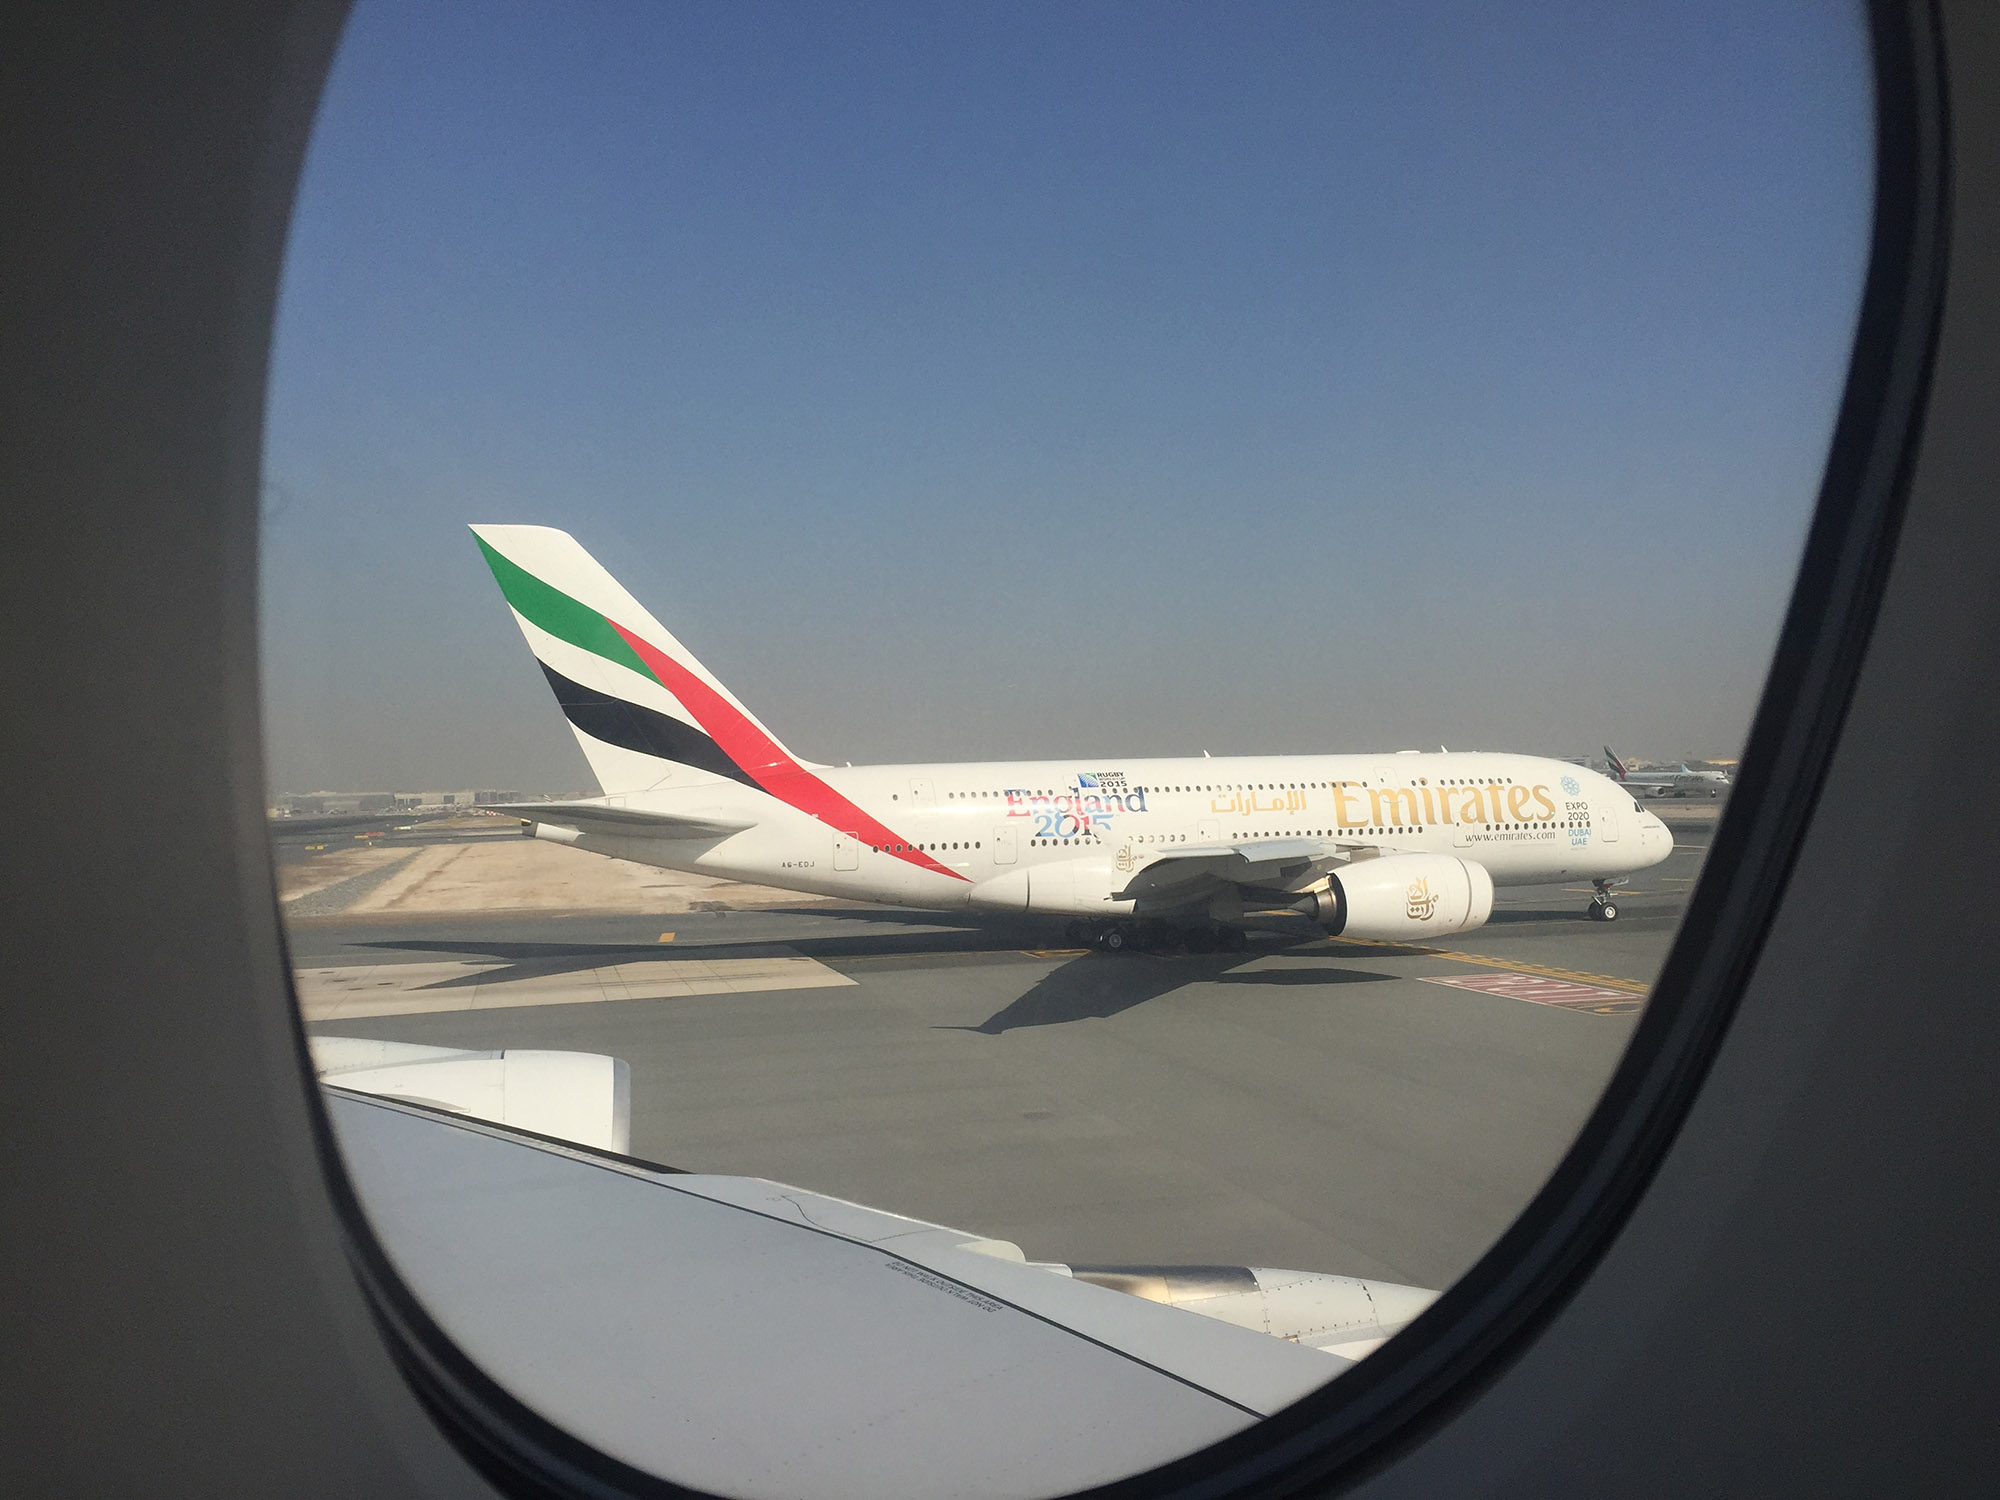 introduction of emirates airlines My emirates interview experiences (tips & advice) in the 'interviews' forum on cabincrewcom.